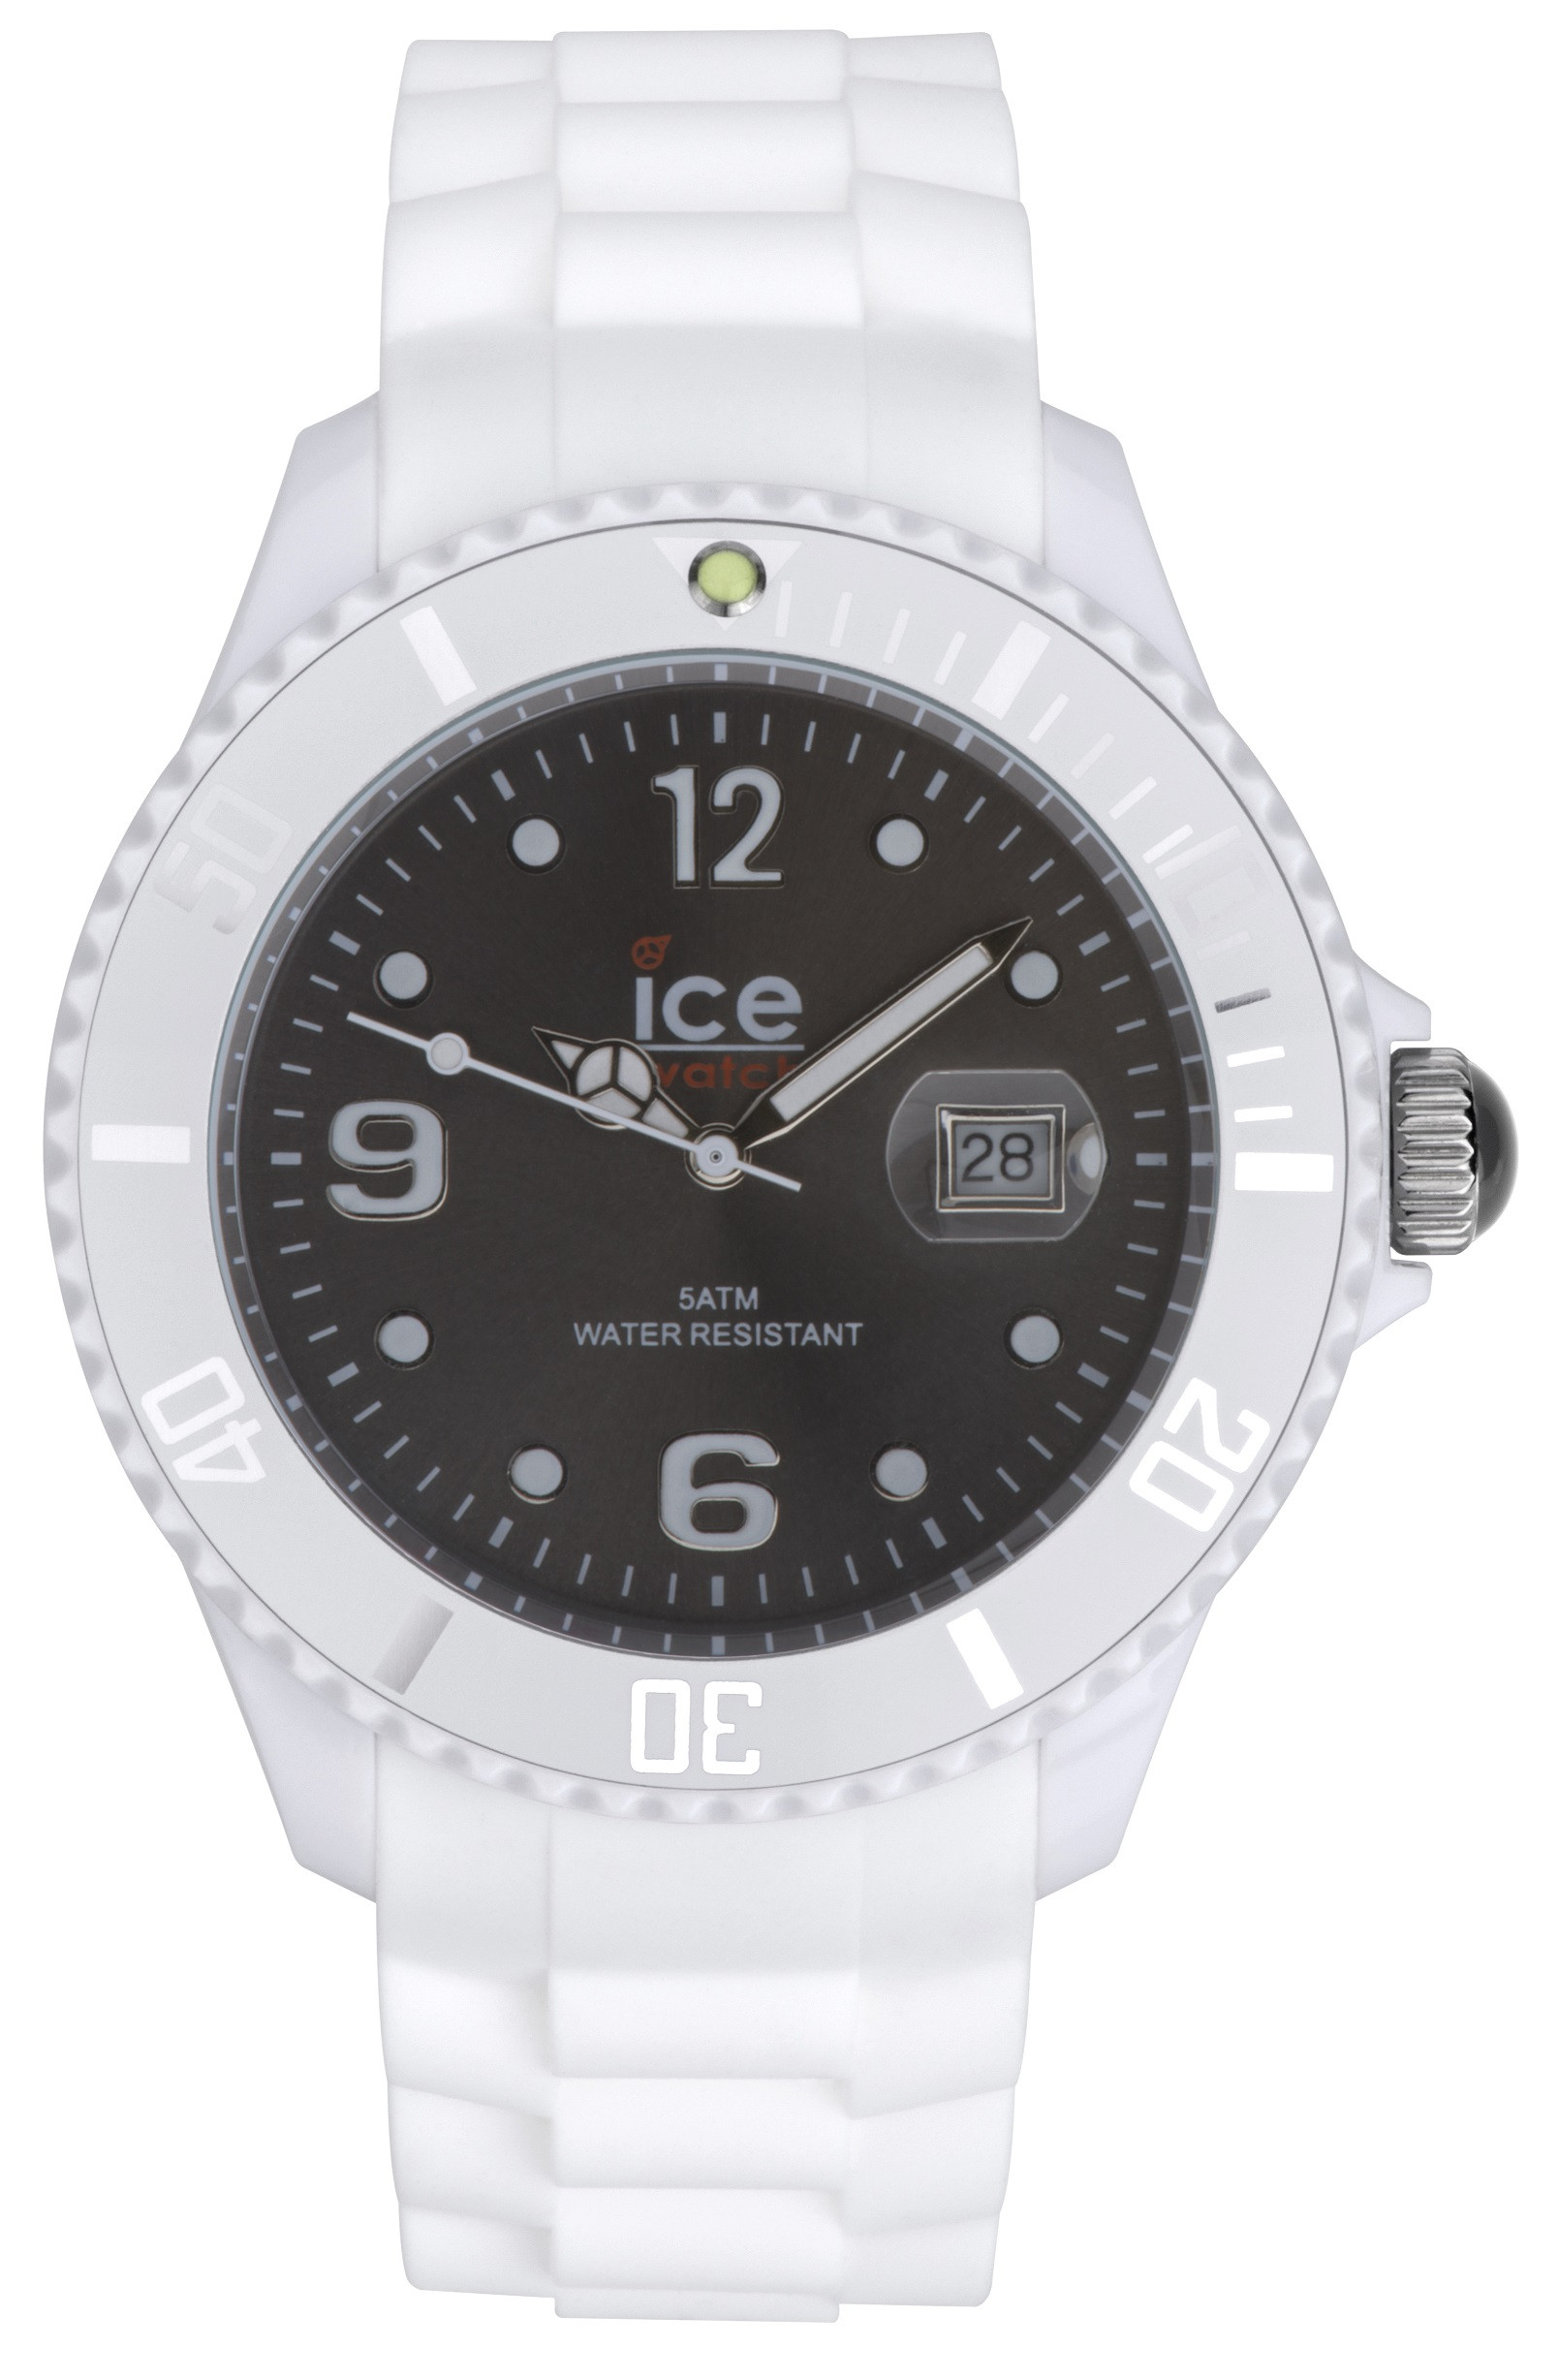 solid look that available en shop monochromatic watches and a black plastic the unadorned whilst white no watch wristband gives appearance an transparent in case tid lightweight zoom silicone durable maintaining